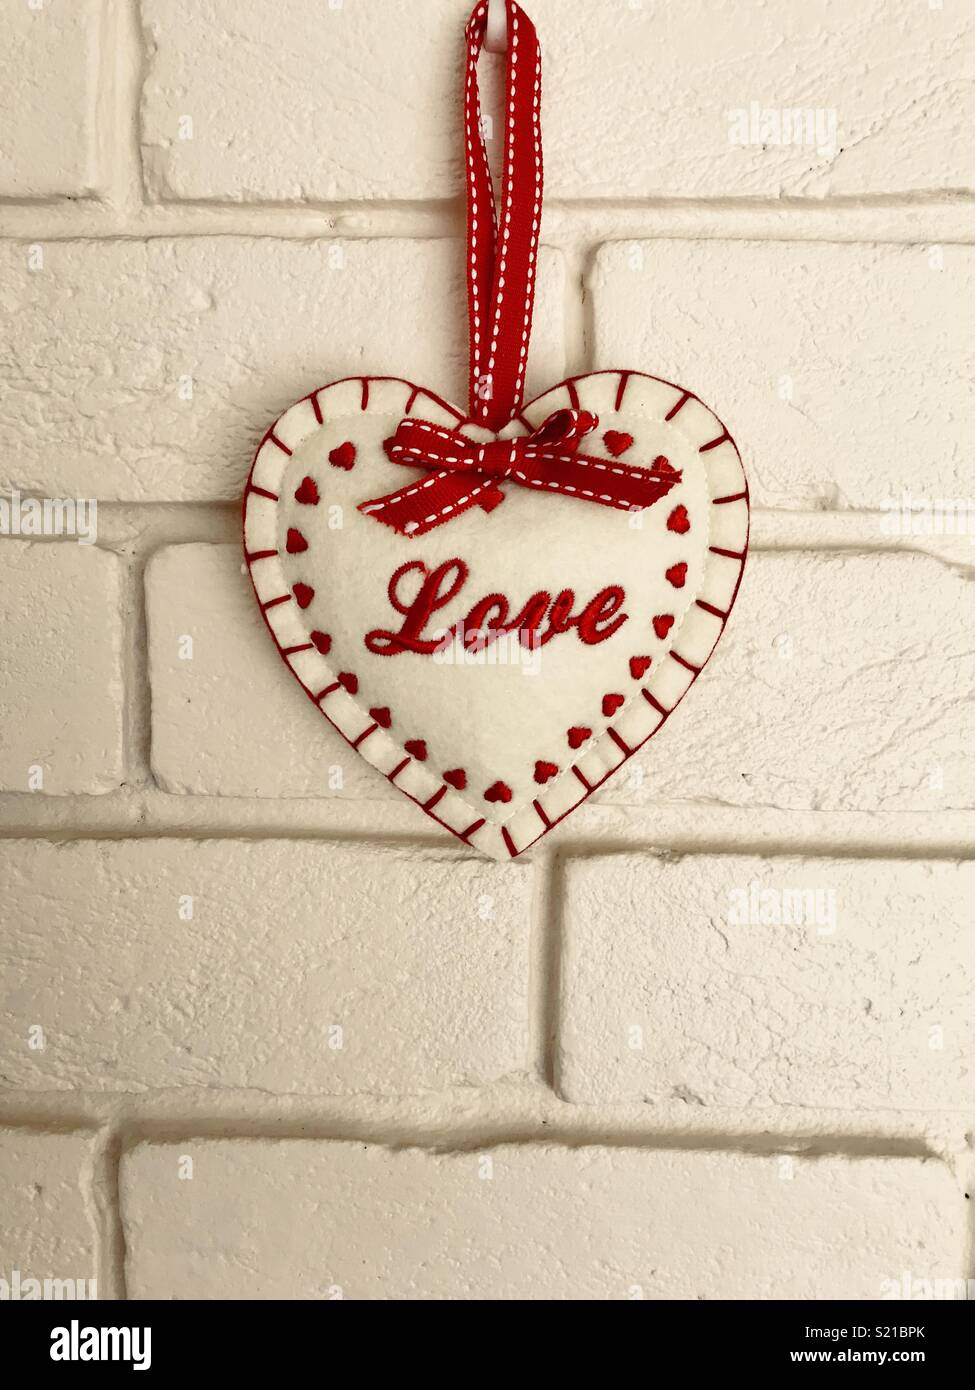 Shabby chic cute love heart decoration - Stock Image